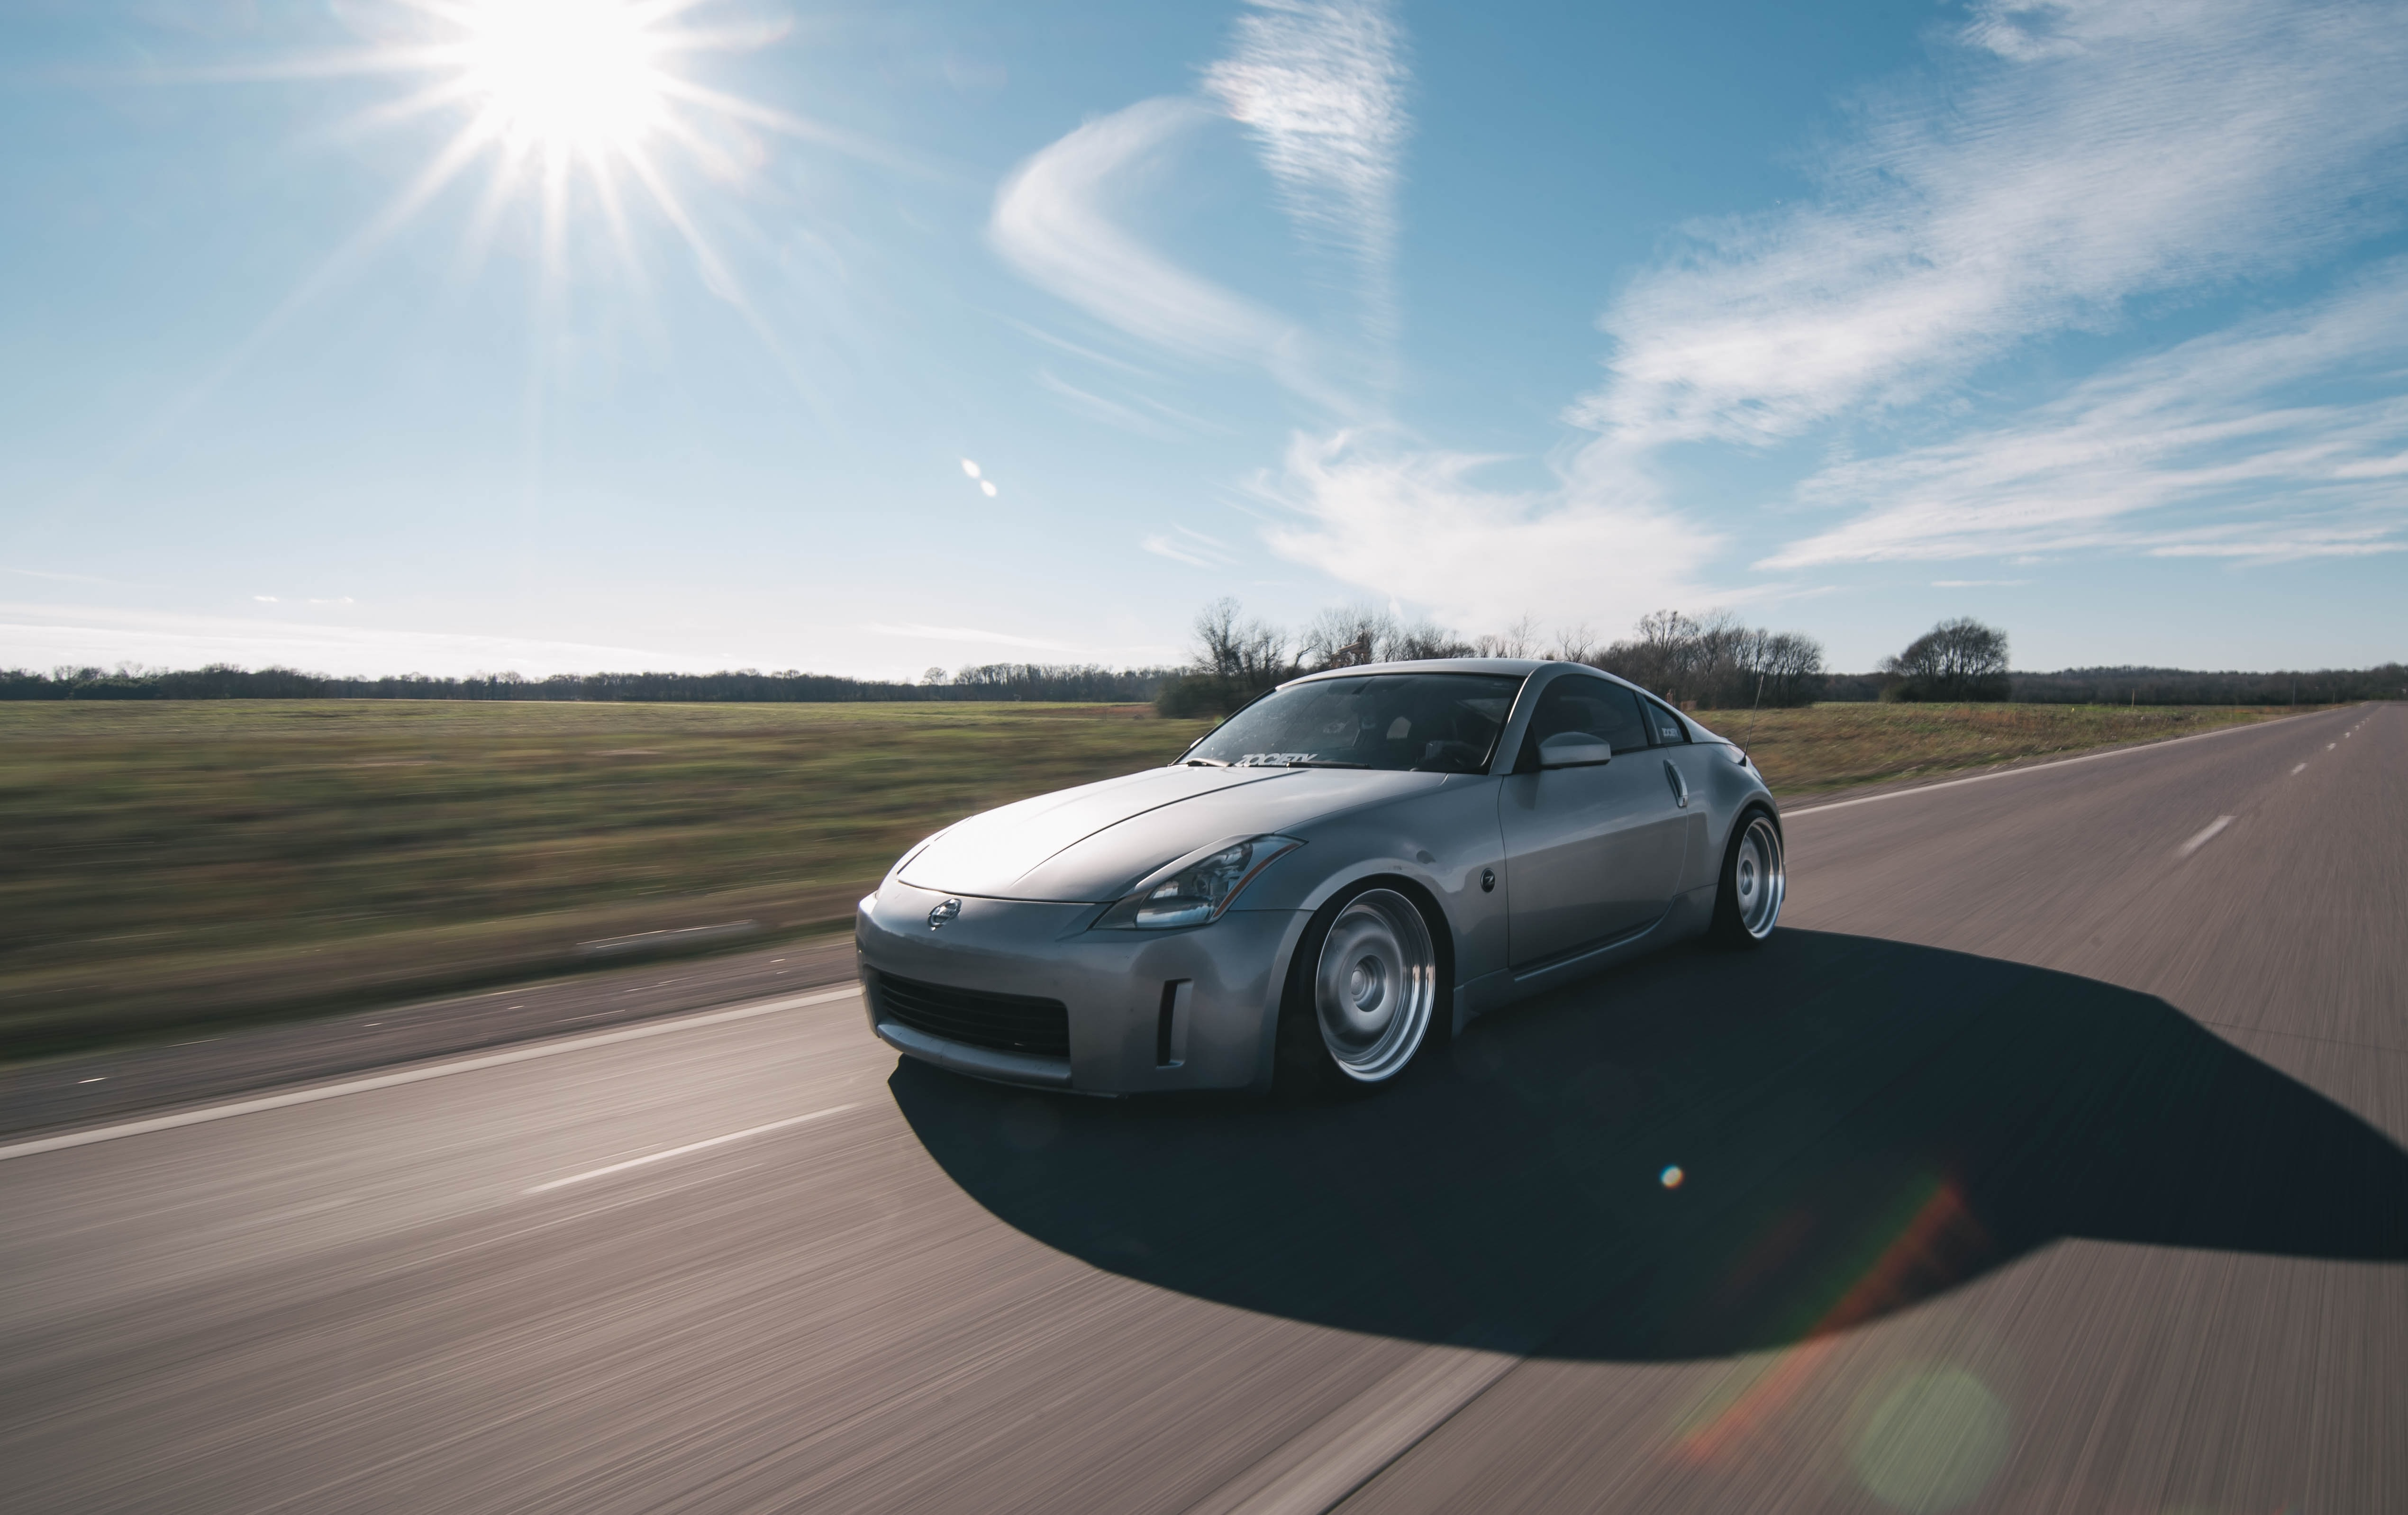 photo of gray coupe on road at daytime